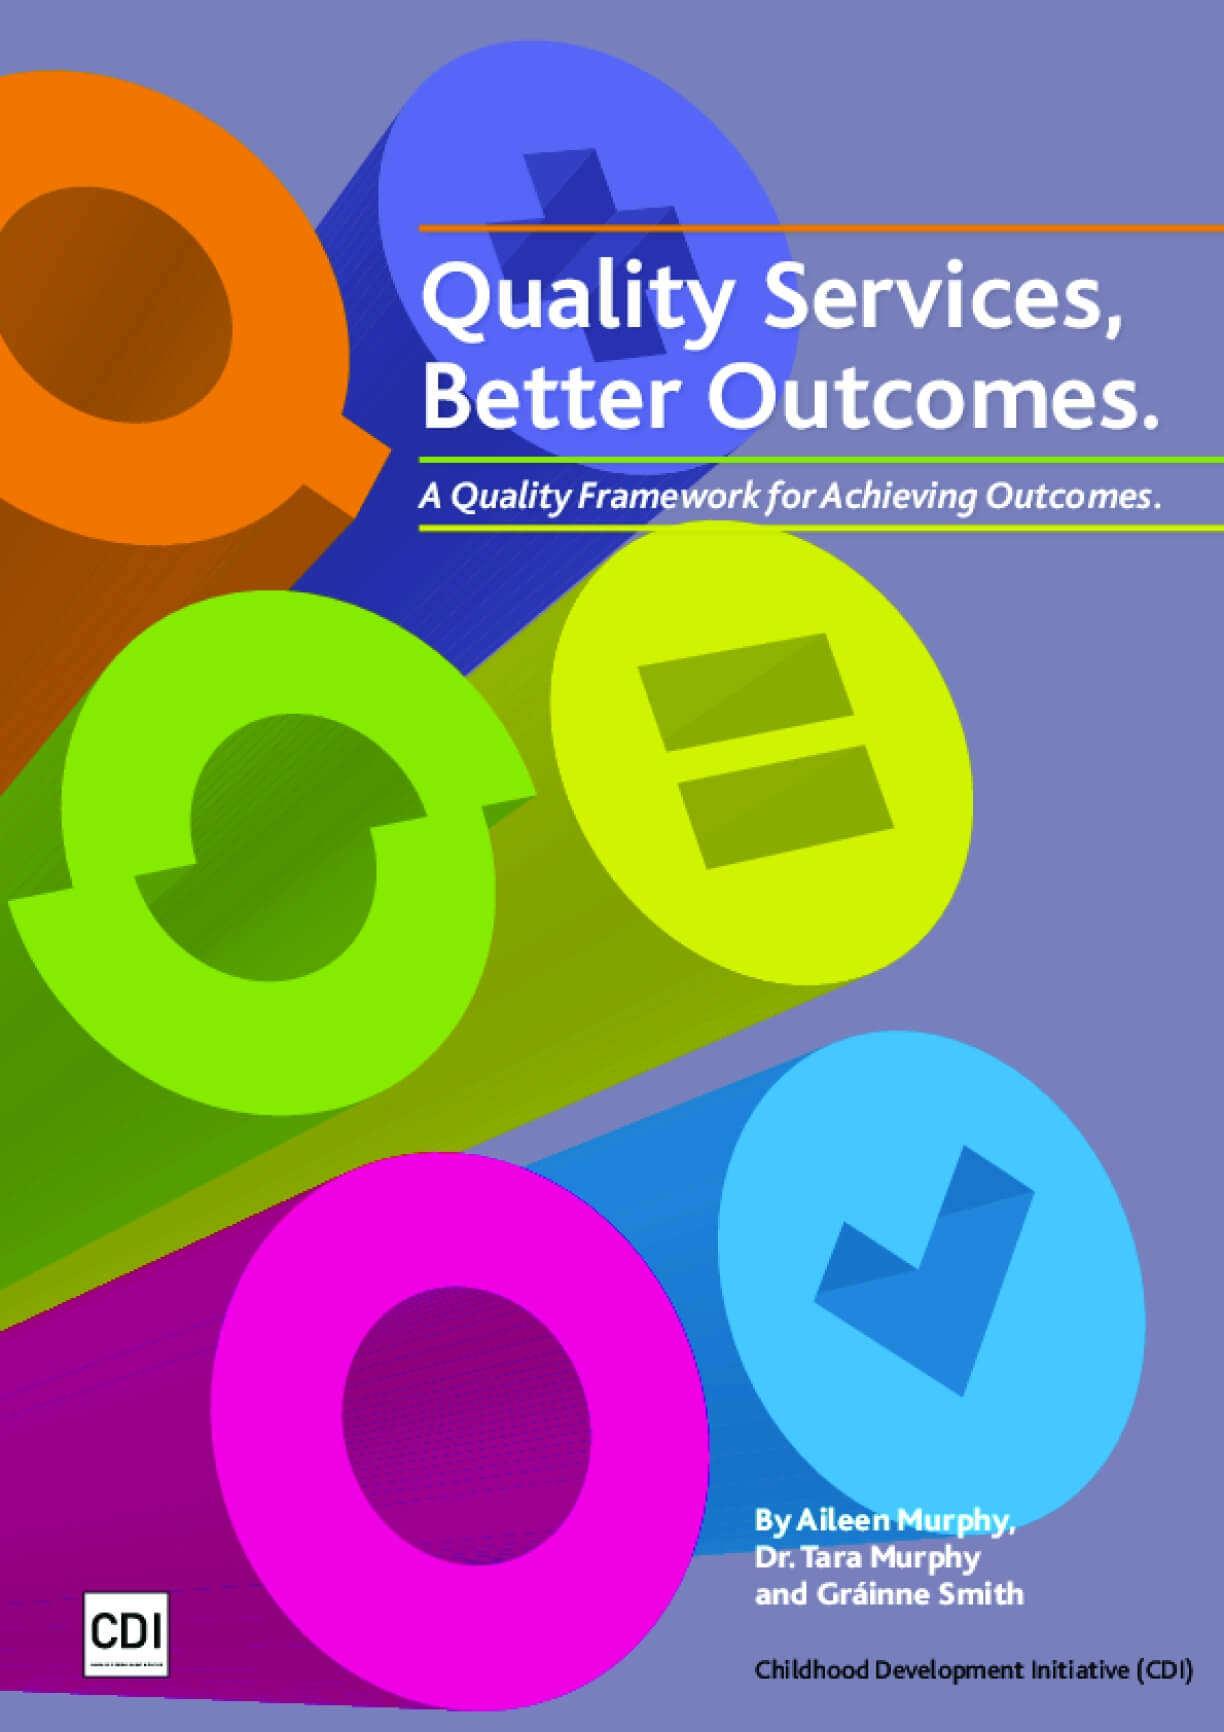 Quality Services, Better Outcomes: A Quality Framework for Achieving Outcomes.